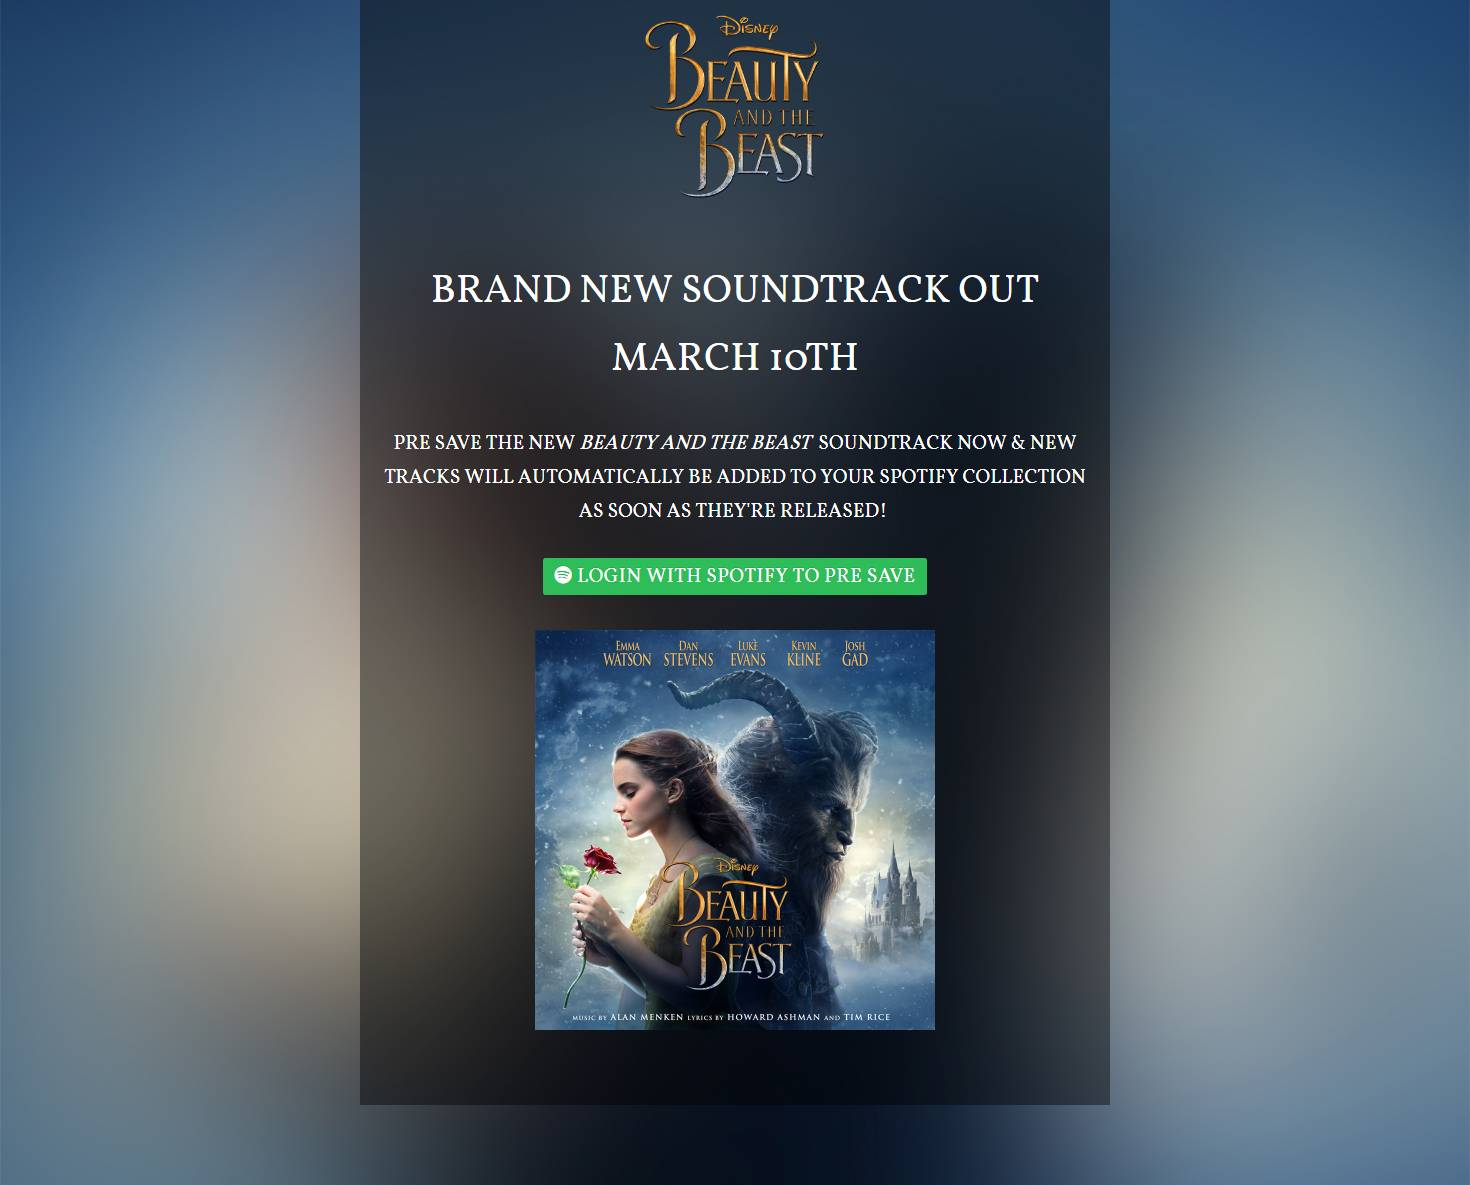 Beauty and the Beast Pre-Save for Spotify, Beauty and the Beast Presave For Spotify, Beauty and the Beast Spotify Pre-Save